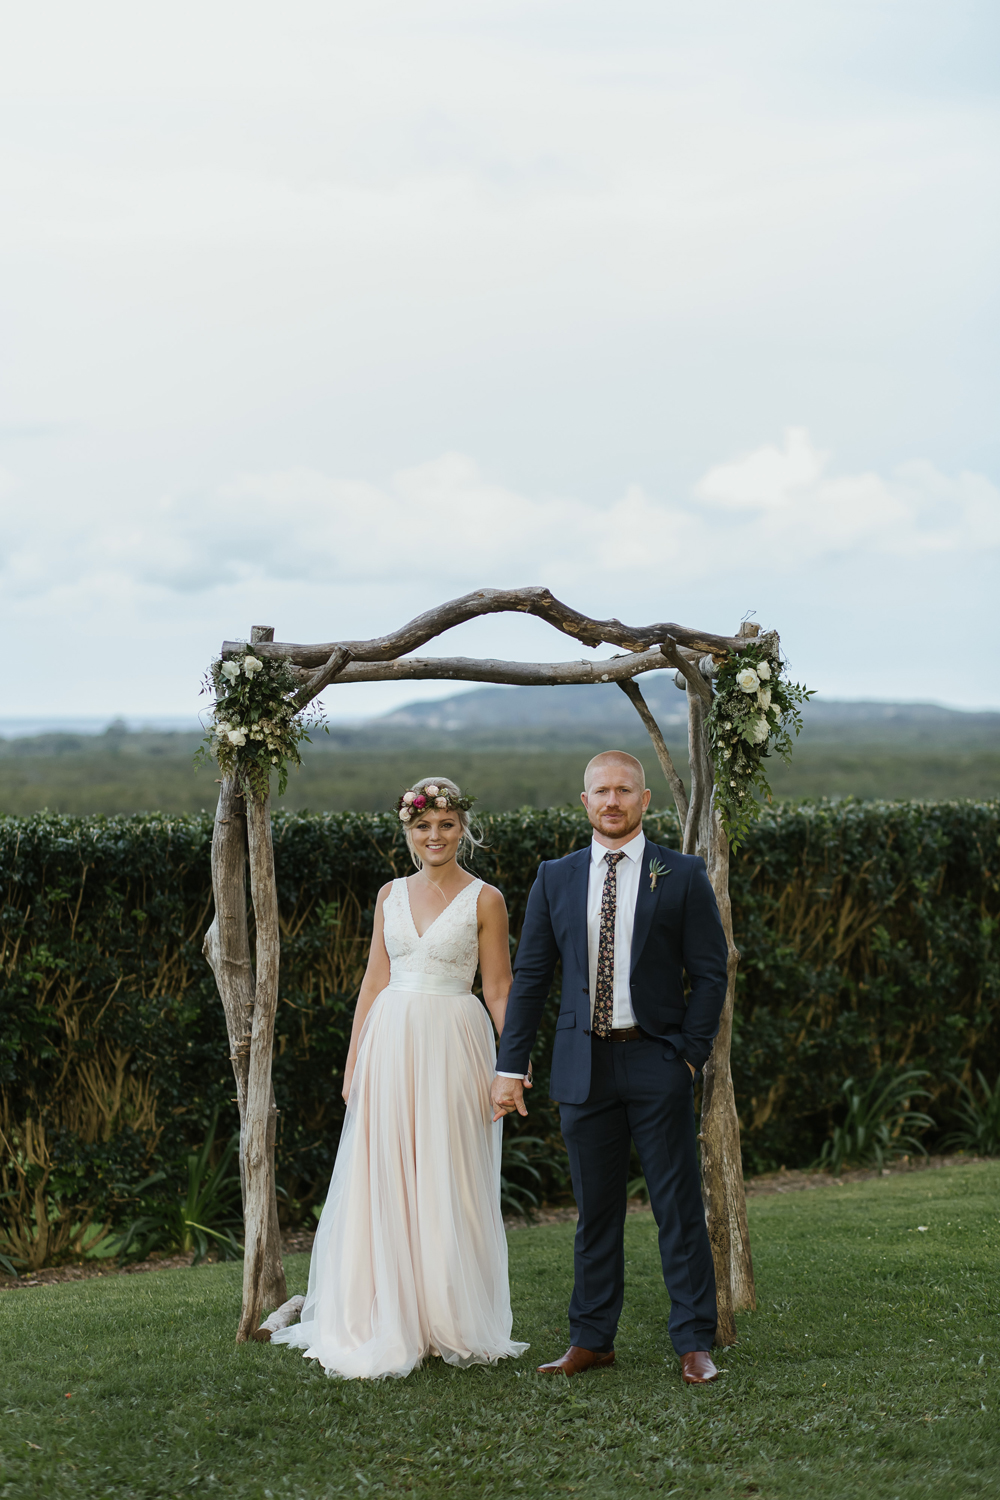 292-Byron-Bay-Wedding-Photographer-Carly-Tia-Photography.jpg